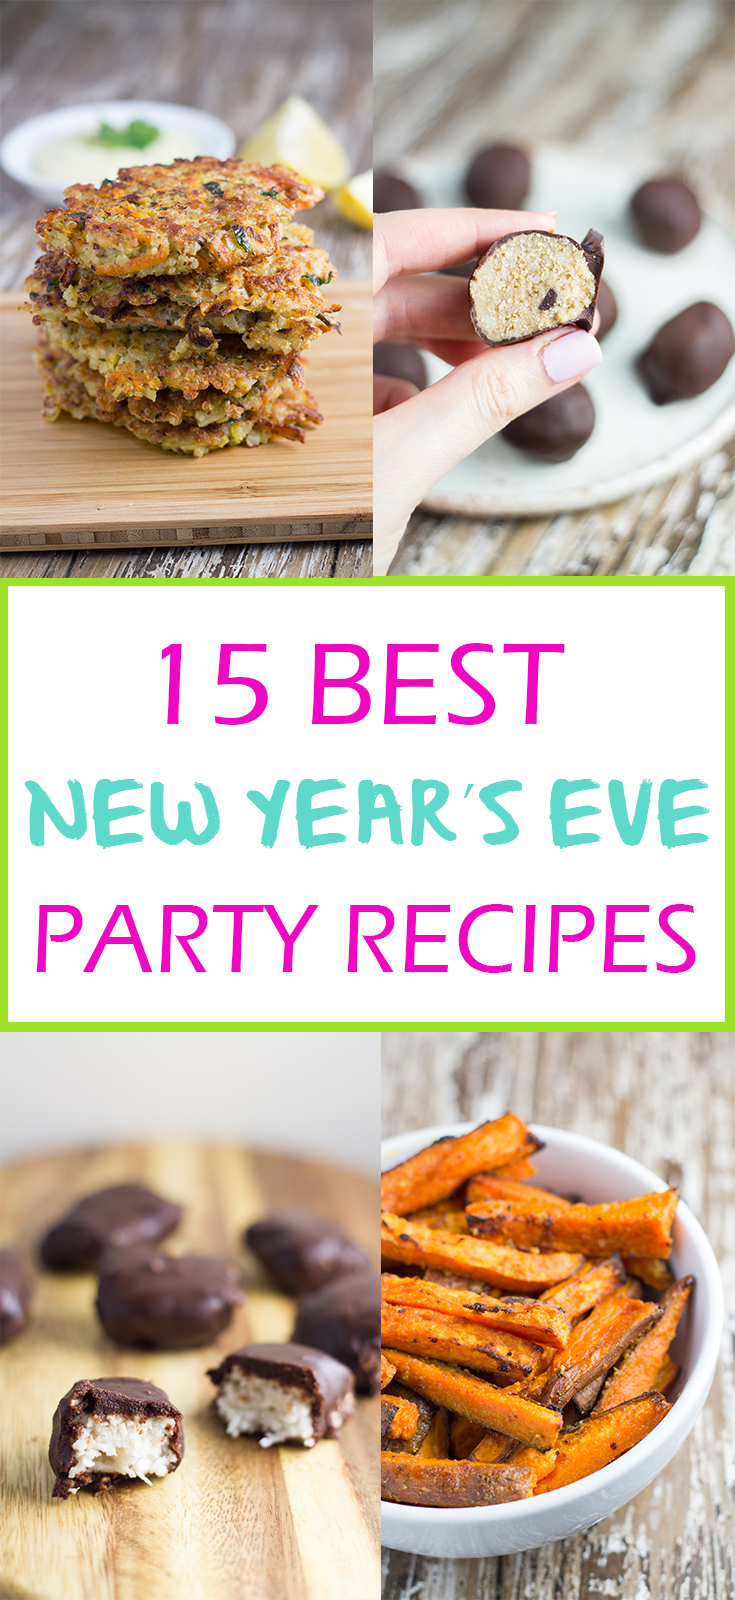 15-best-new-years-eve-party-recipes